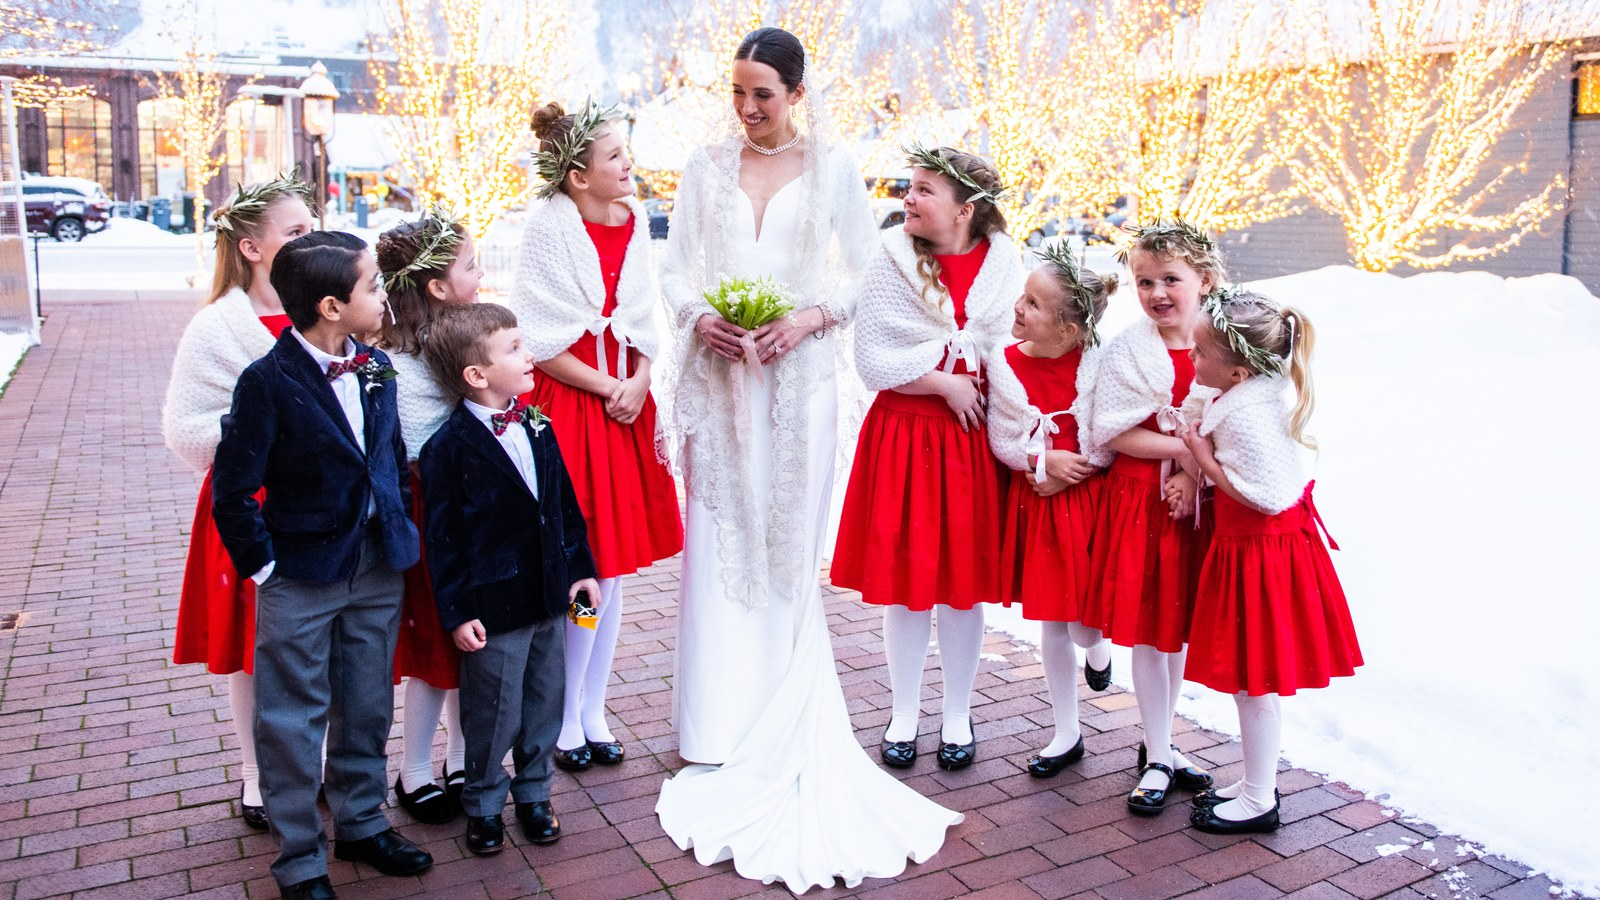 """A """"Ski Bride"""" Gown Was the First Look at This Winter Wedding in Aspen"""